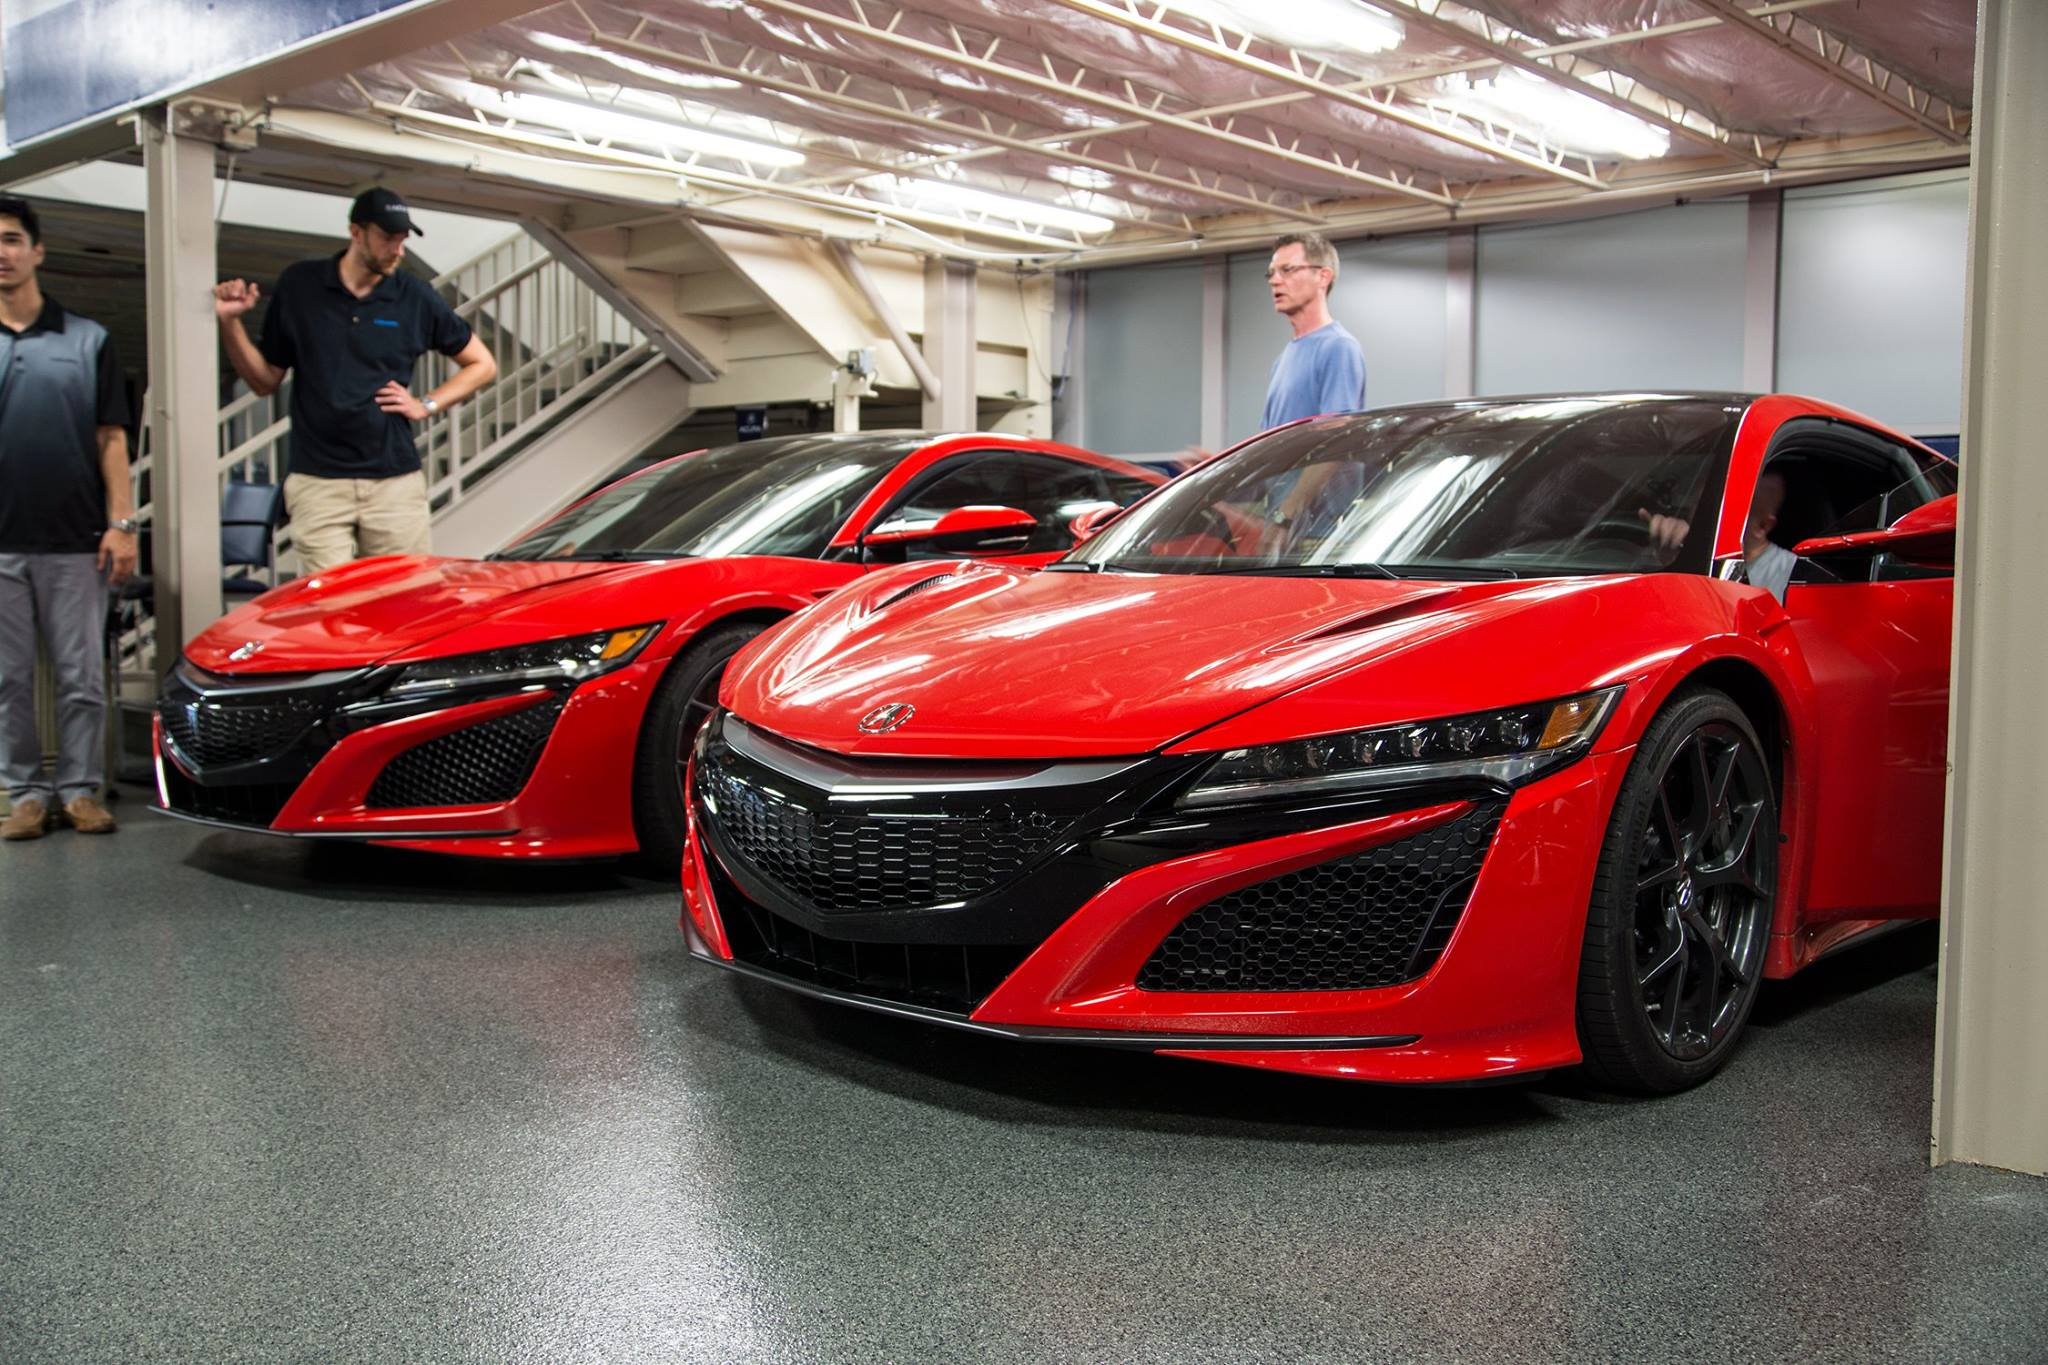 St Louis Honda >> 2016 Acura NSX Caught on Video in the Wild